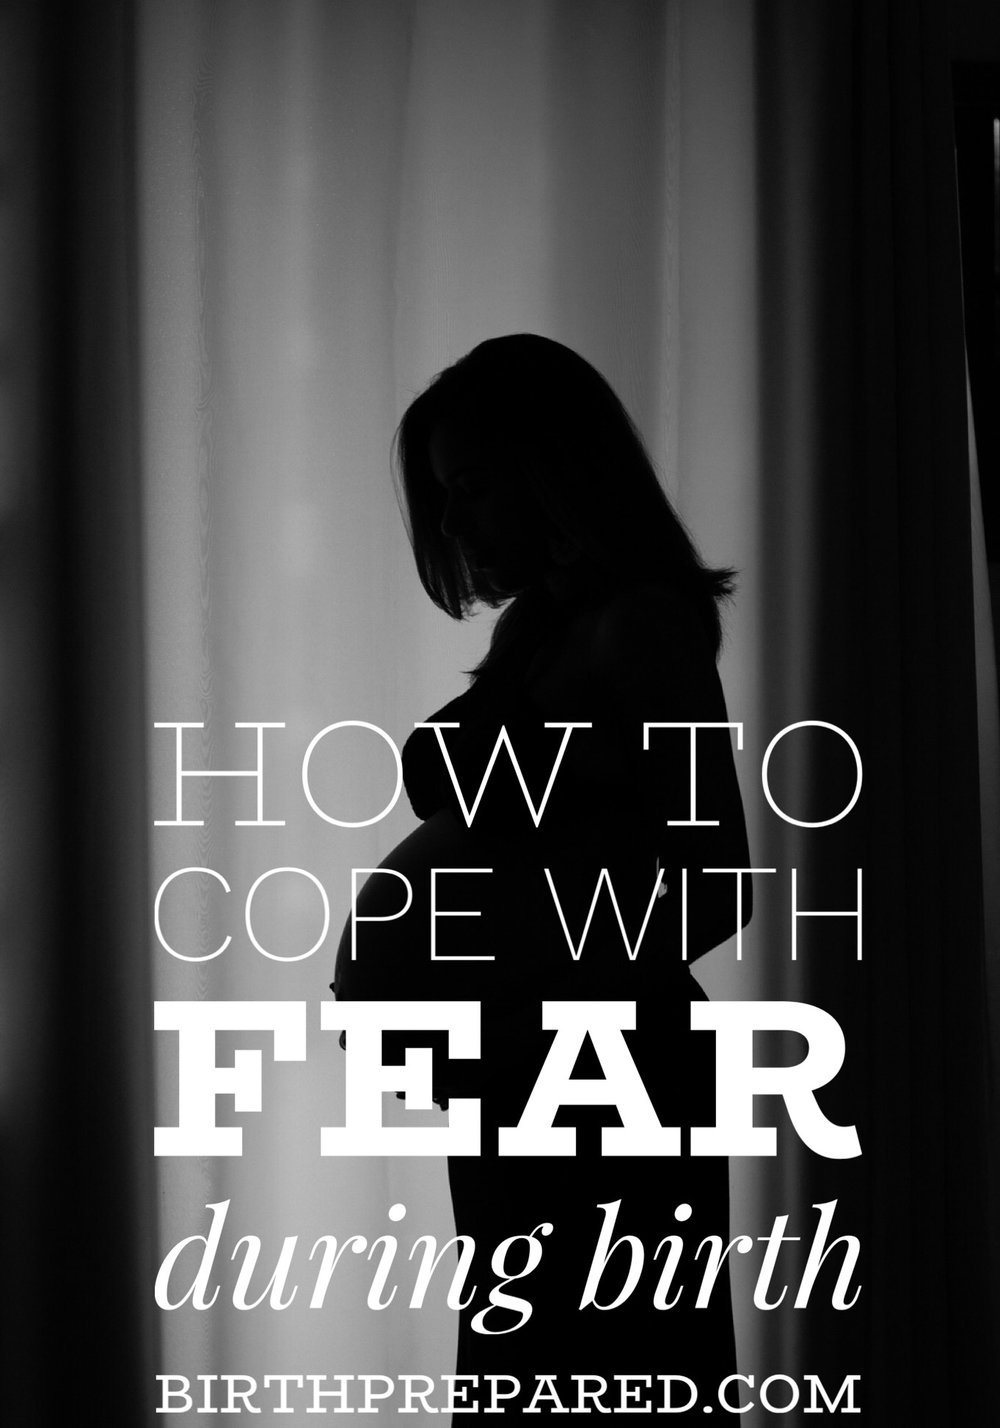 Fear of childbirth: how to cope with it